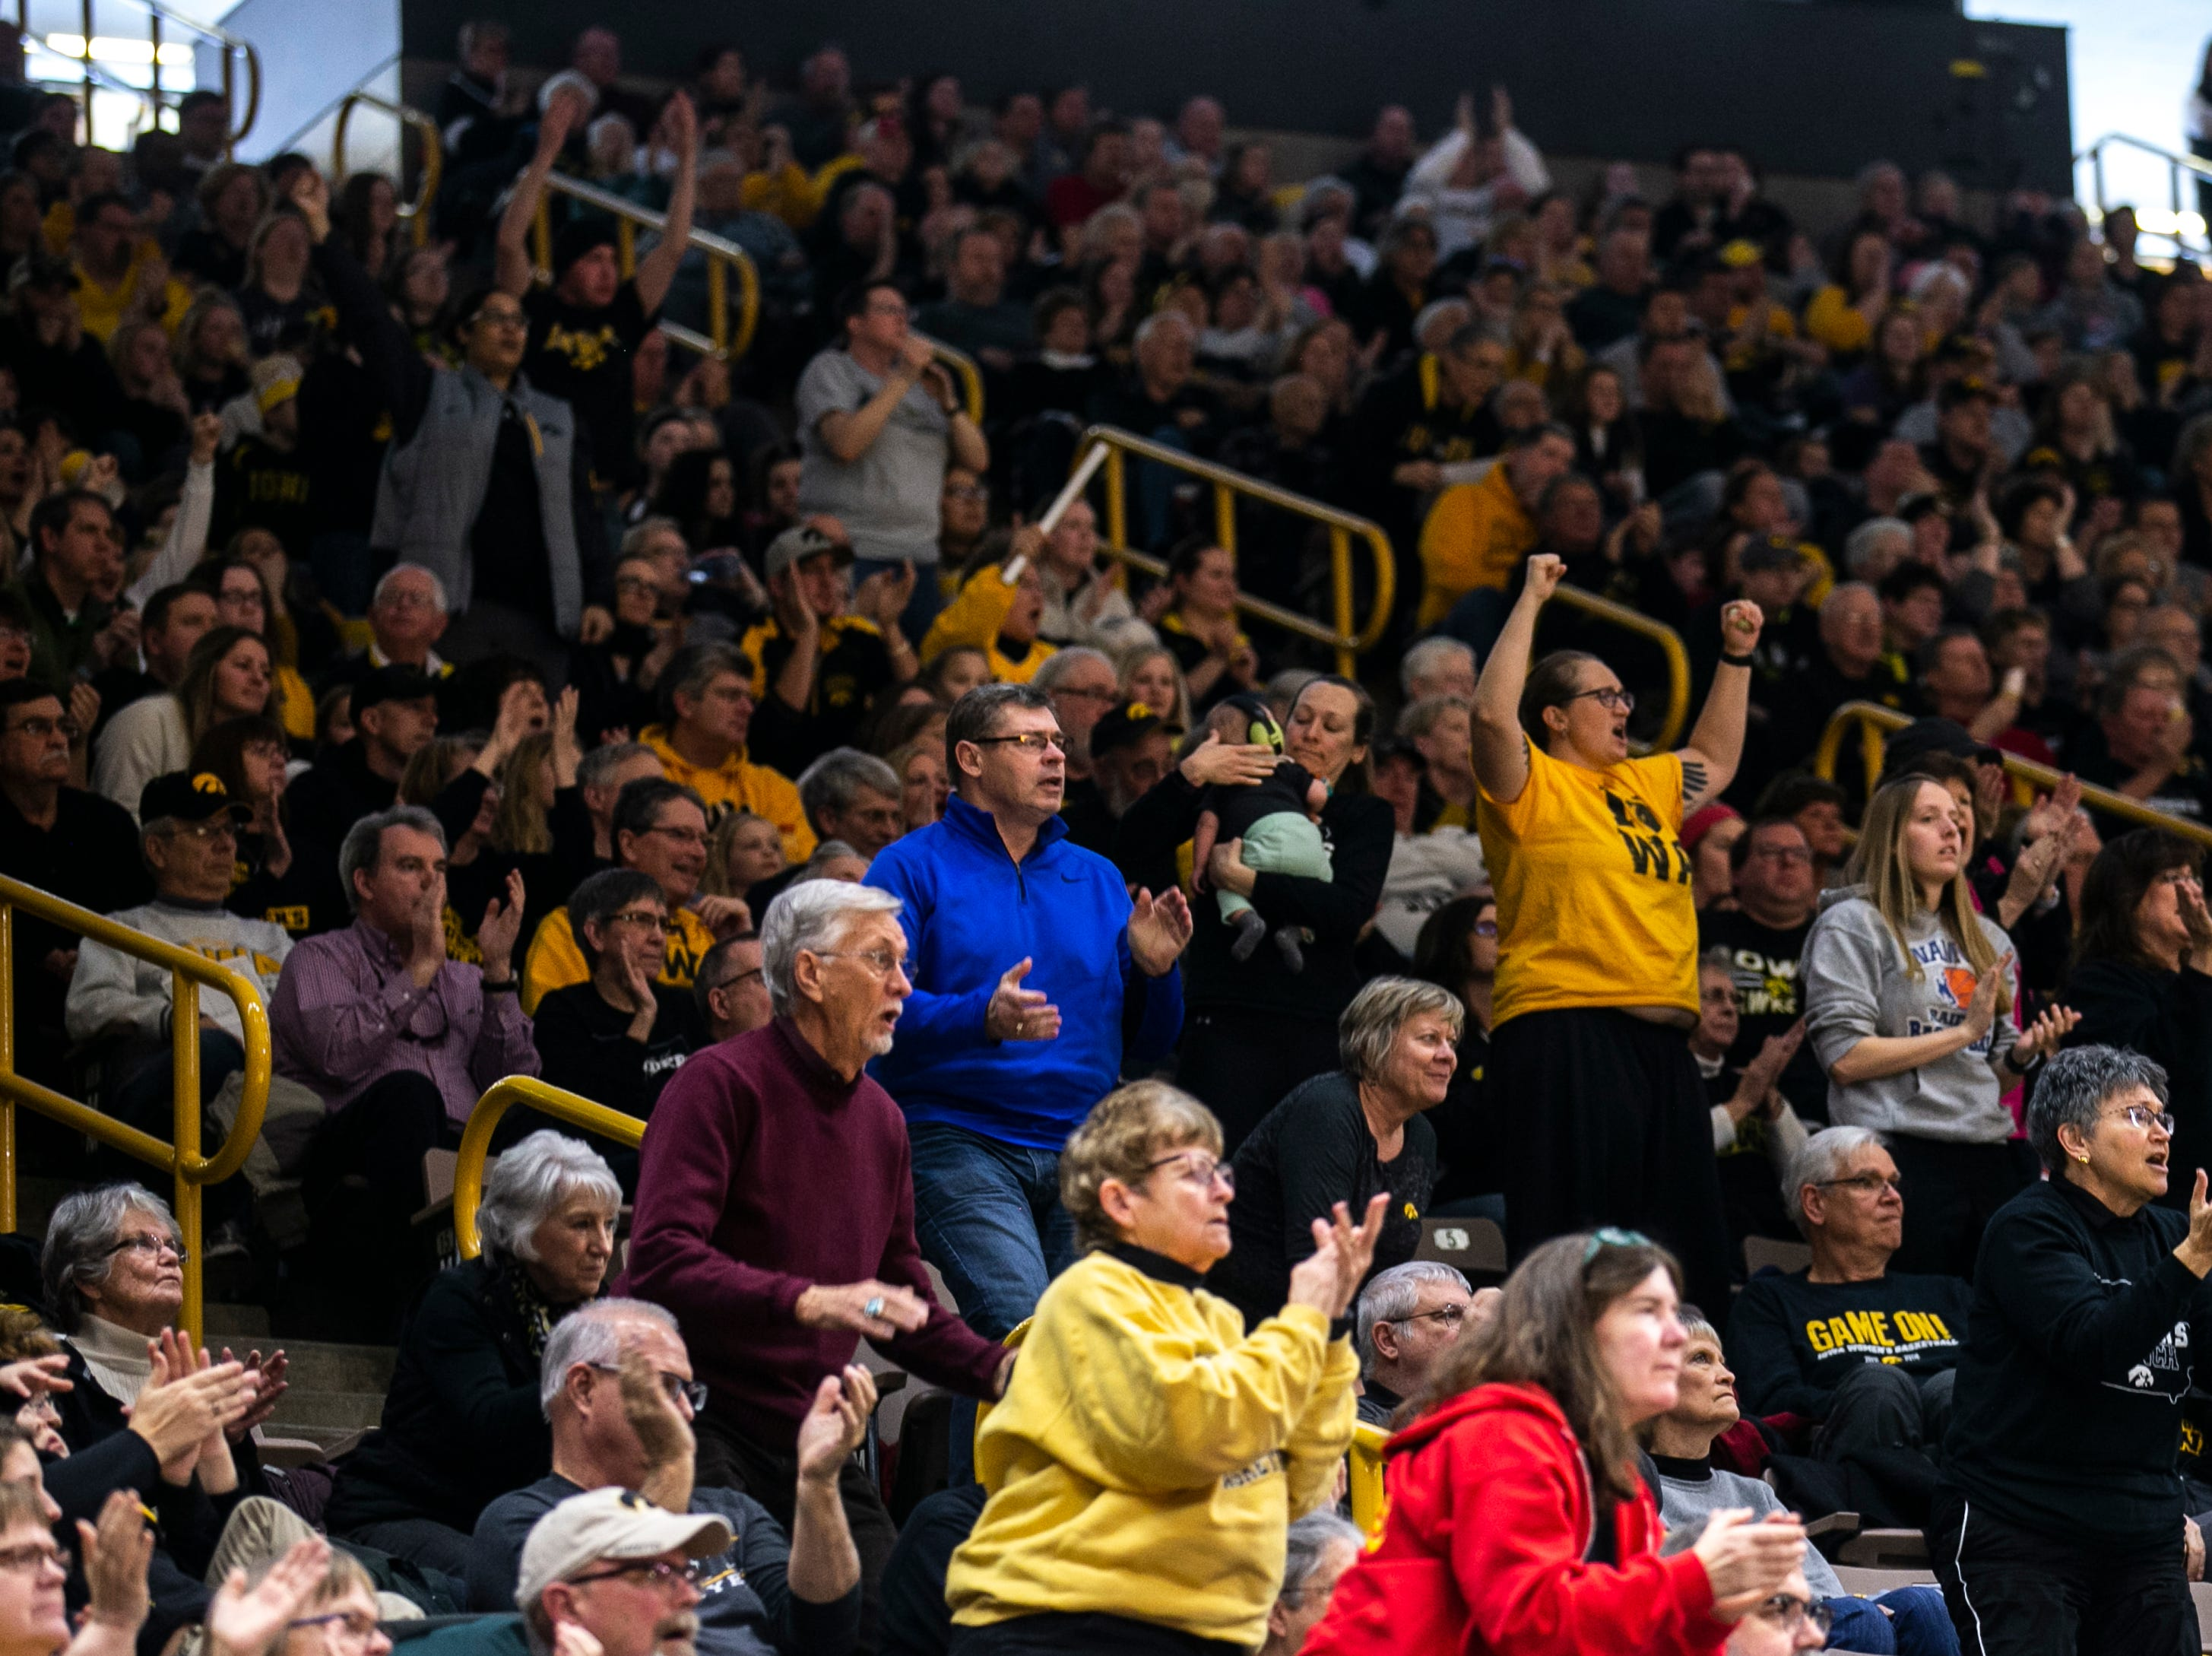 Iowa Hawkeyes fans cheer during a NCAA Big Ten Conference women's basketball game on Sunday, Jan. 27, 2019, at Carver-Hawkeye Arena in Iowa City, Iowa.